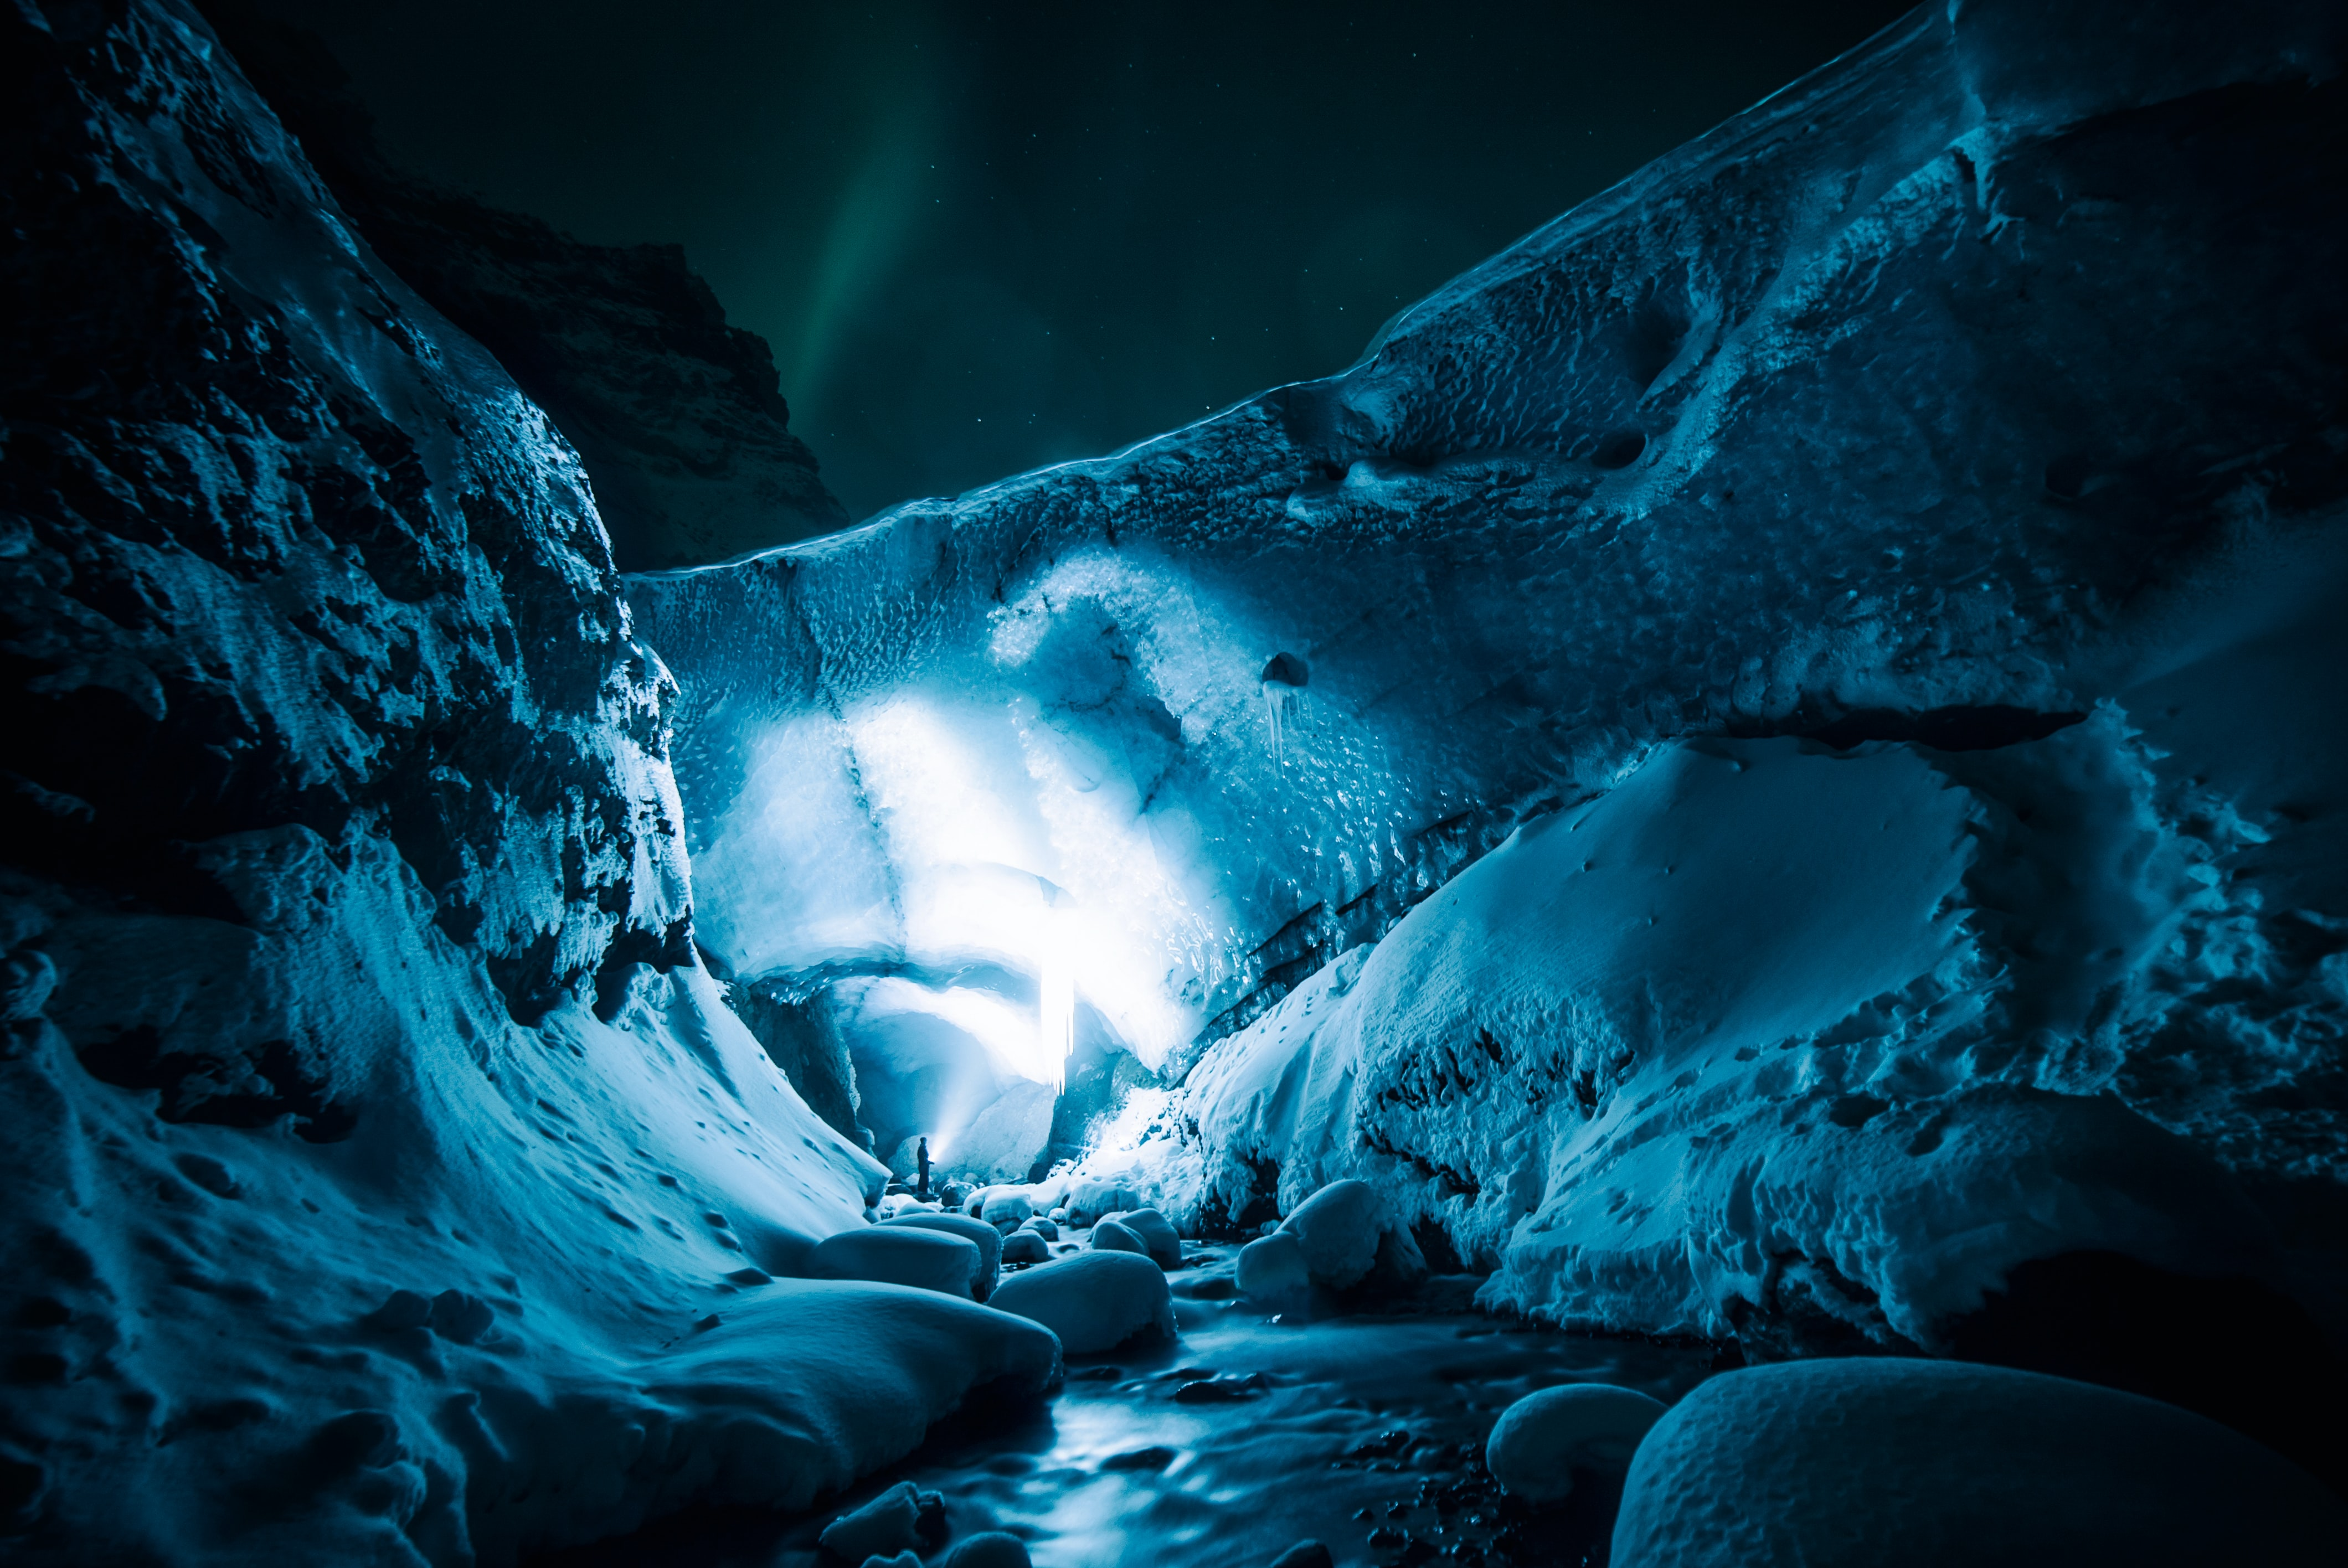 A view inside the Gigjökull Ice Cave in Iceland, highlighted with a blue light